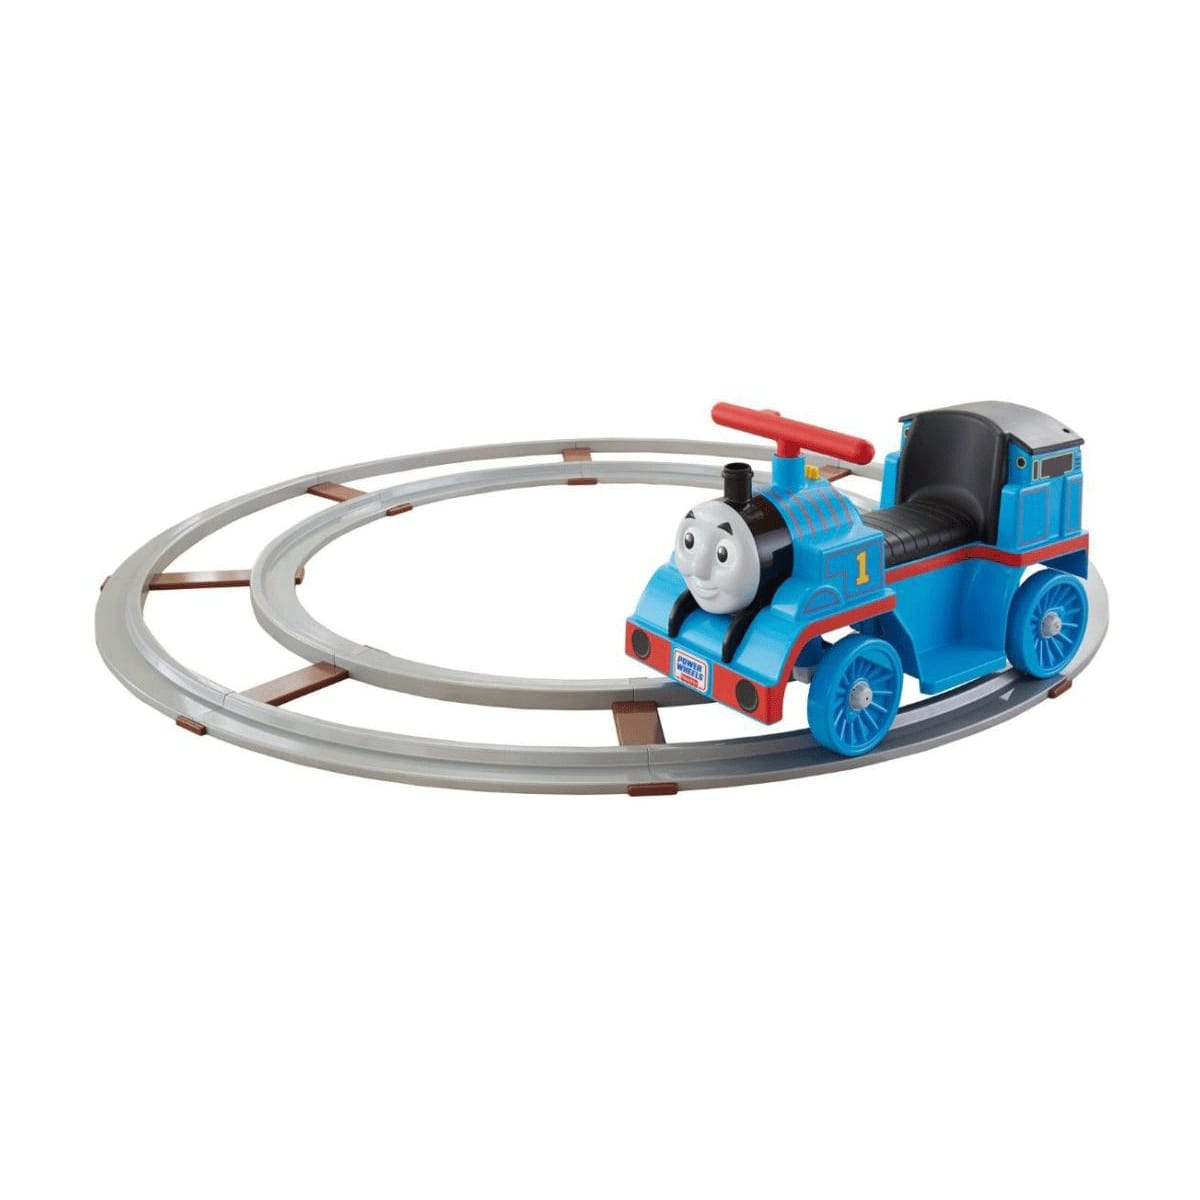 Battery-Powered Thomas Track Train Power Fisher-Price 6-Volt Ride-On 線路付電動電車 トーマストレイン the Wheels 電動カー On 6Vバッテリー付